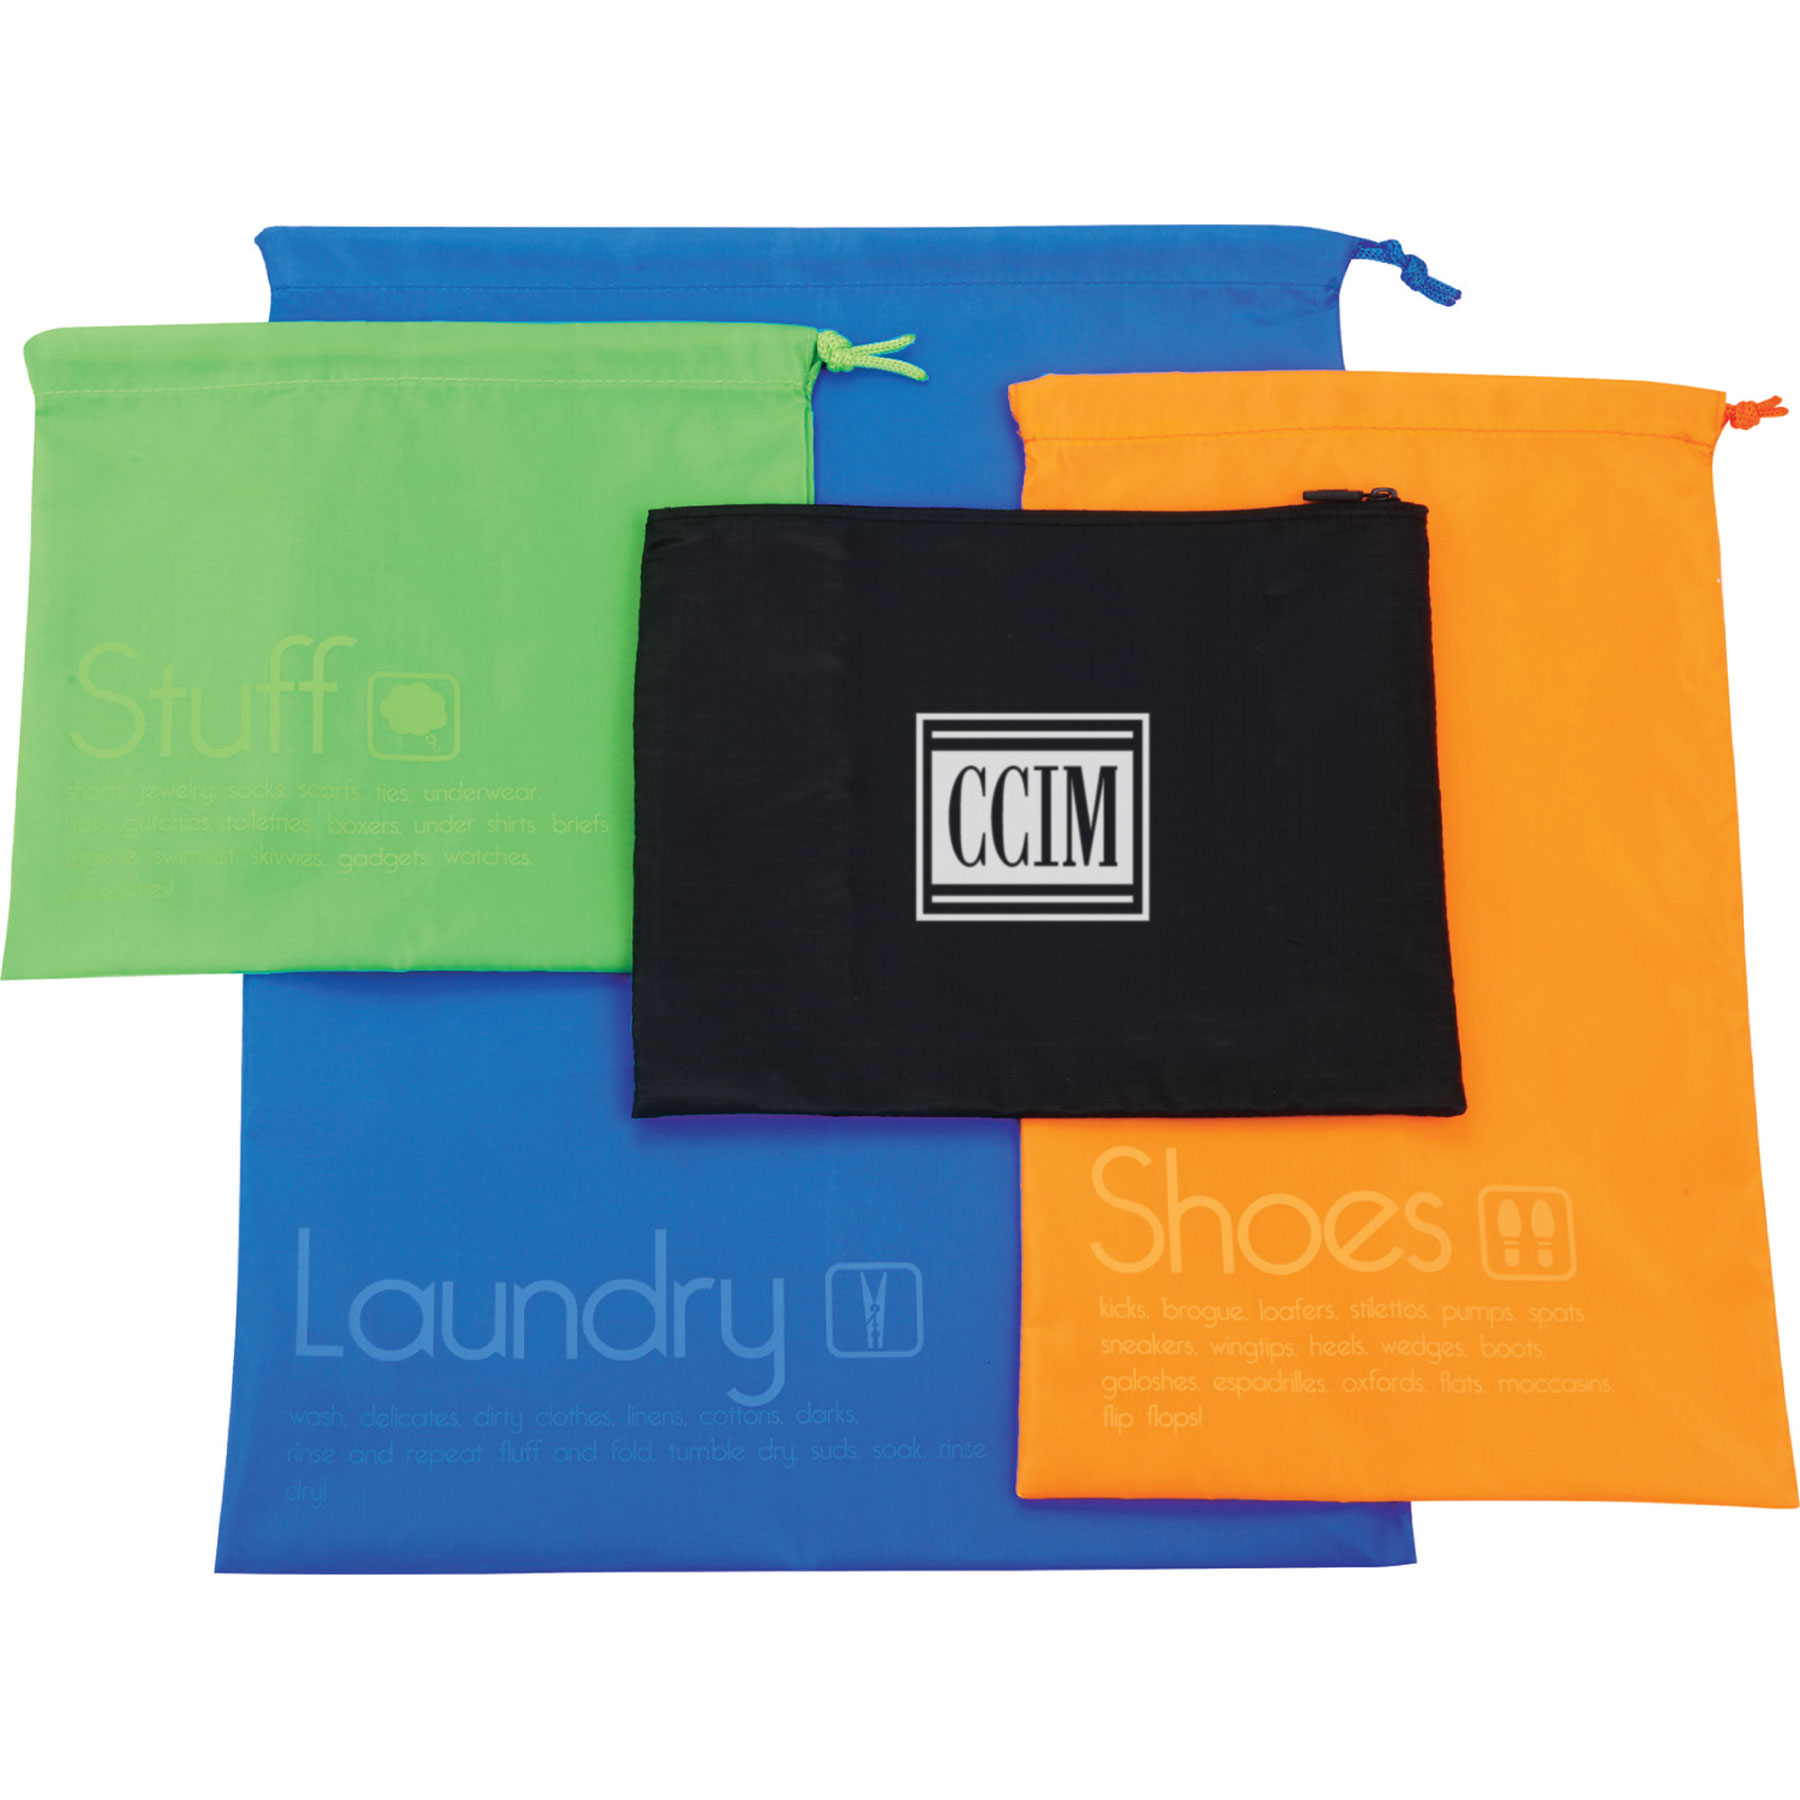 CCIM CleanBags Travel Set Travels,Bags,Packings,Sets,Laundrys,Dirtys